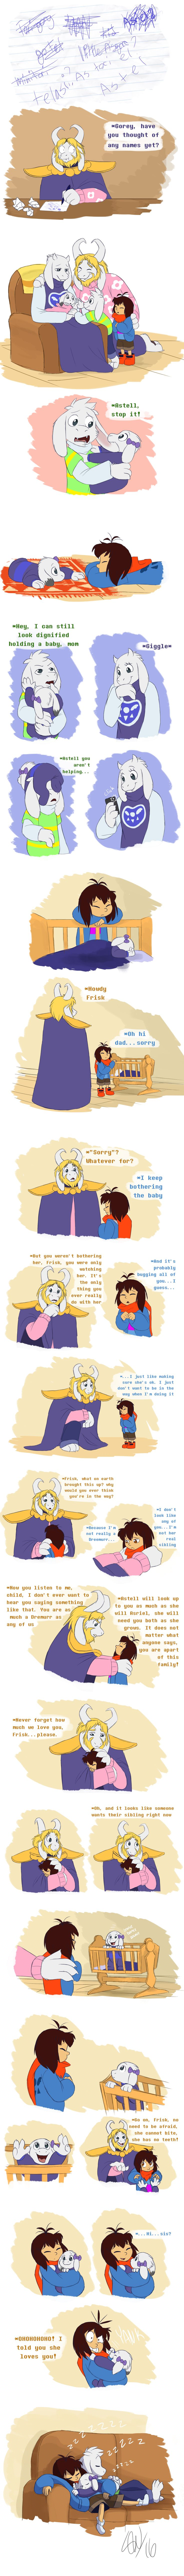 Undertale - Baby Makes 5 (What if) by TC-96 on DeviantArt